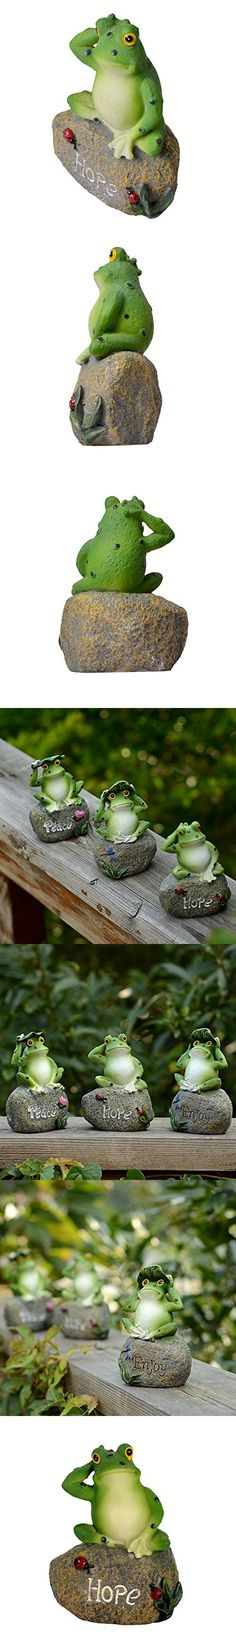 Buy Frog With An IPad Figurine By Warren Stratford For